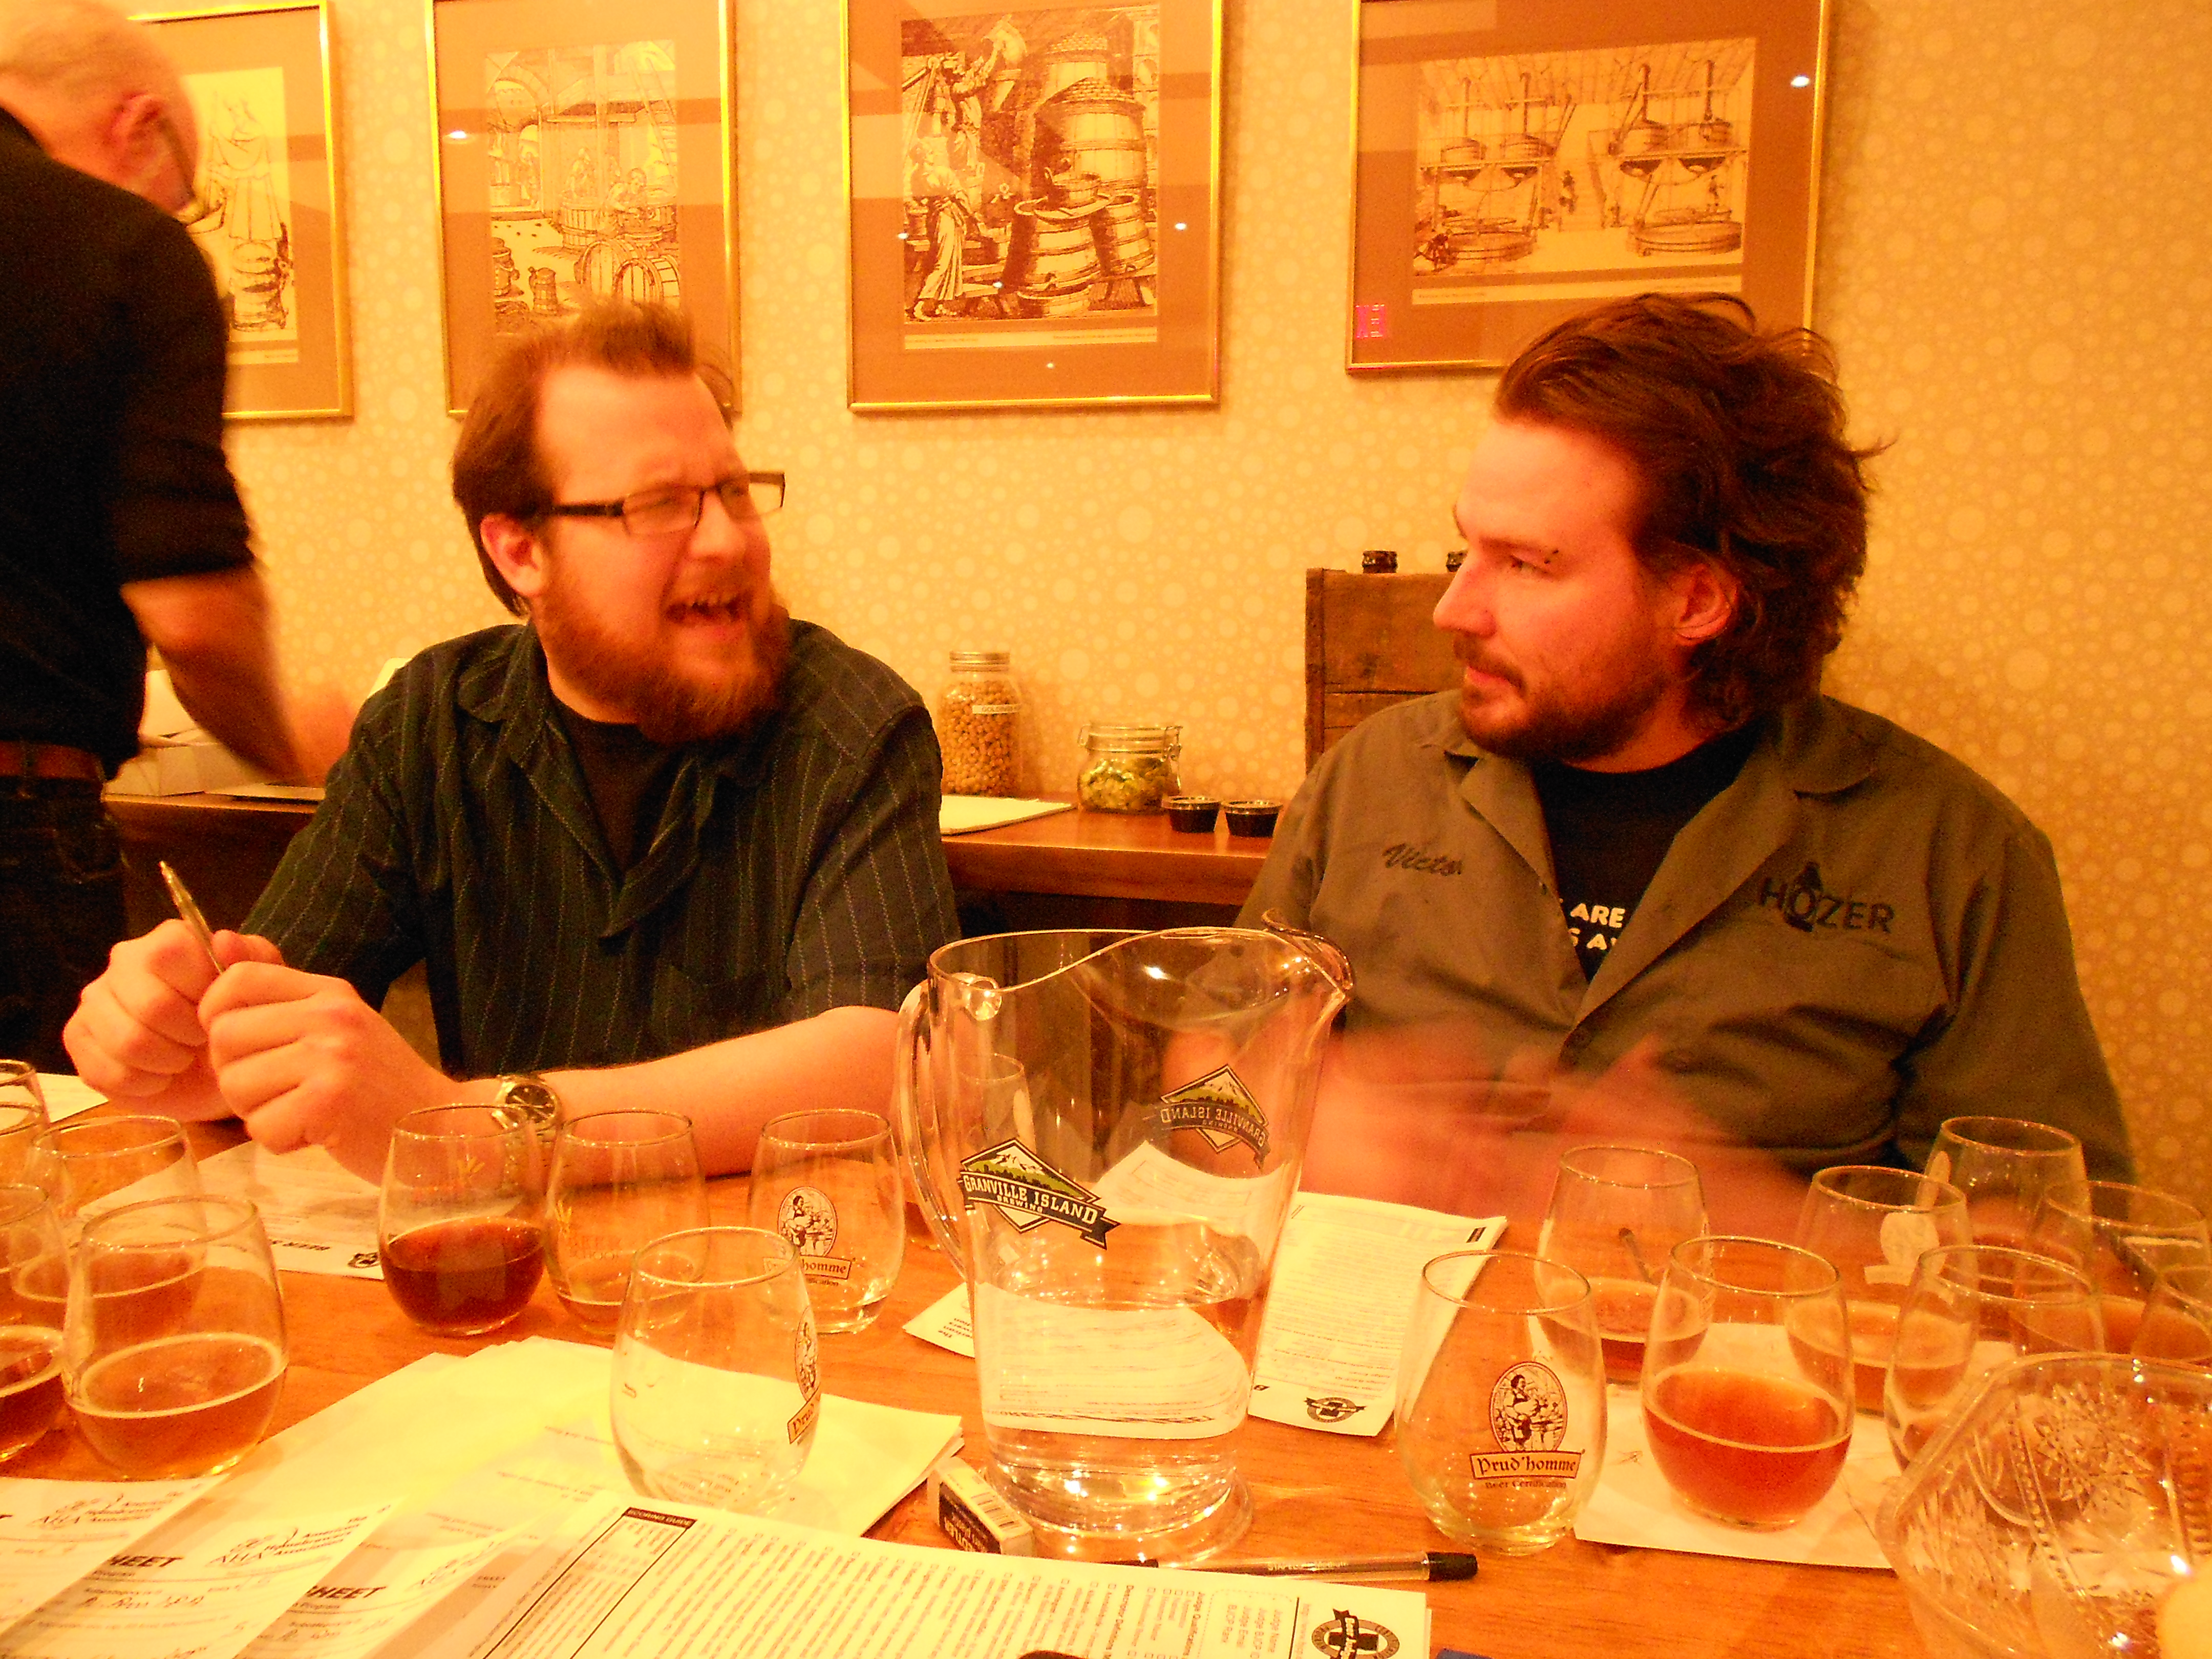 Brad Clifford (left) of Get Well Brewery and Victor North (right) of Three Brewers discussing a beer in the competition.